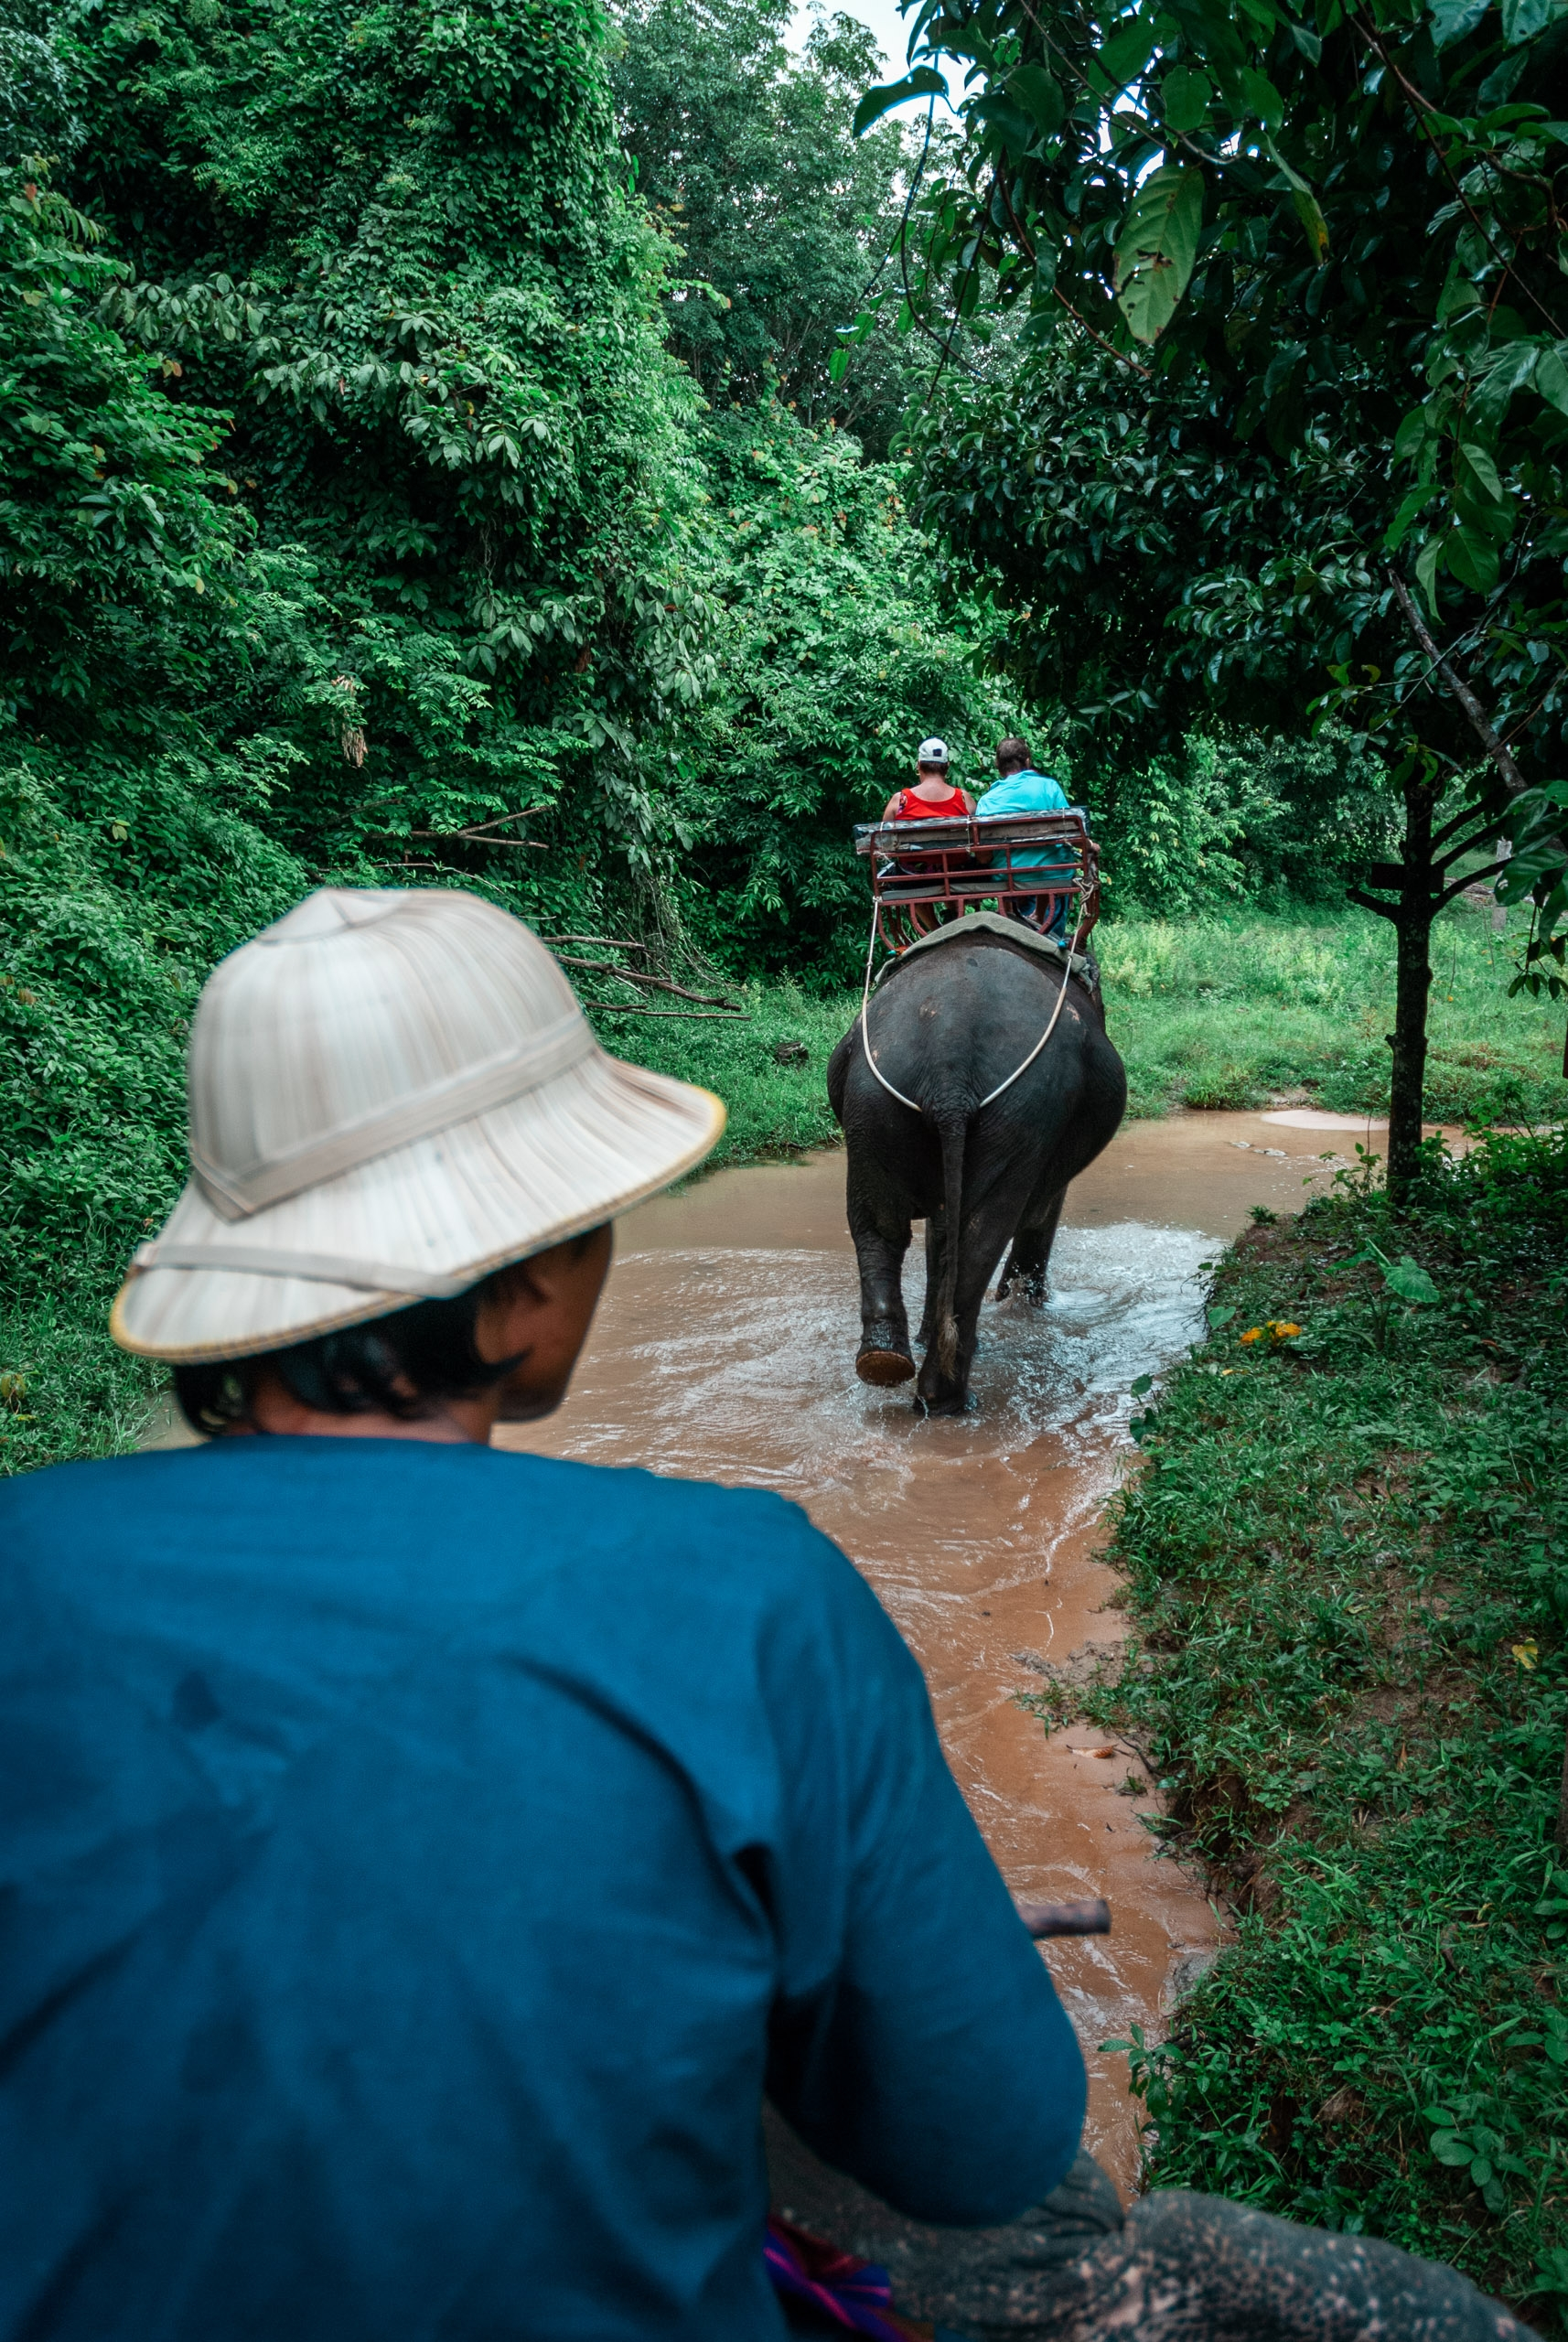 Riding an Elephant at the Elephant Reserve